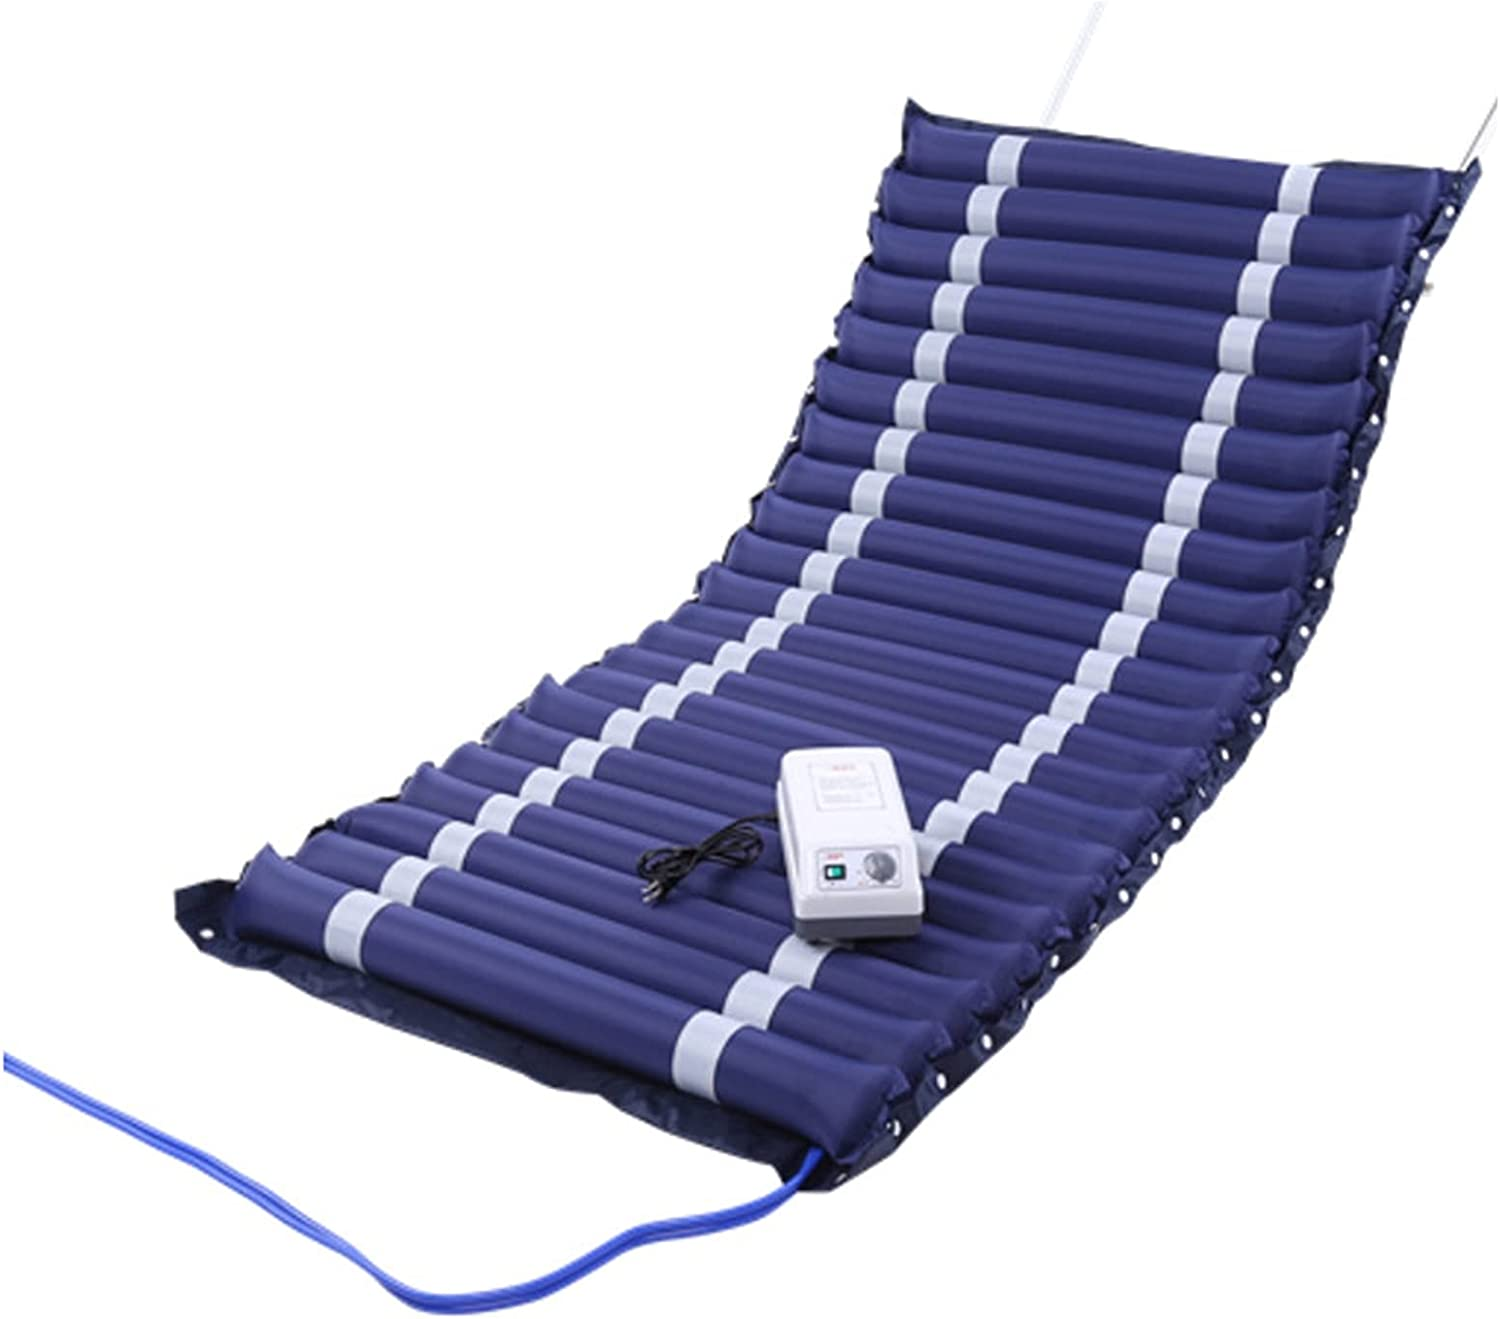 Alternating Pressure Mattress with Electric Topp Pump System Air Manufacturer direct Kansas City Mall delivery